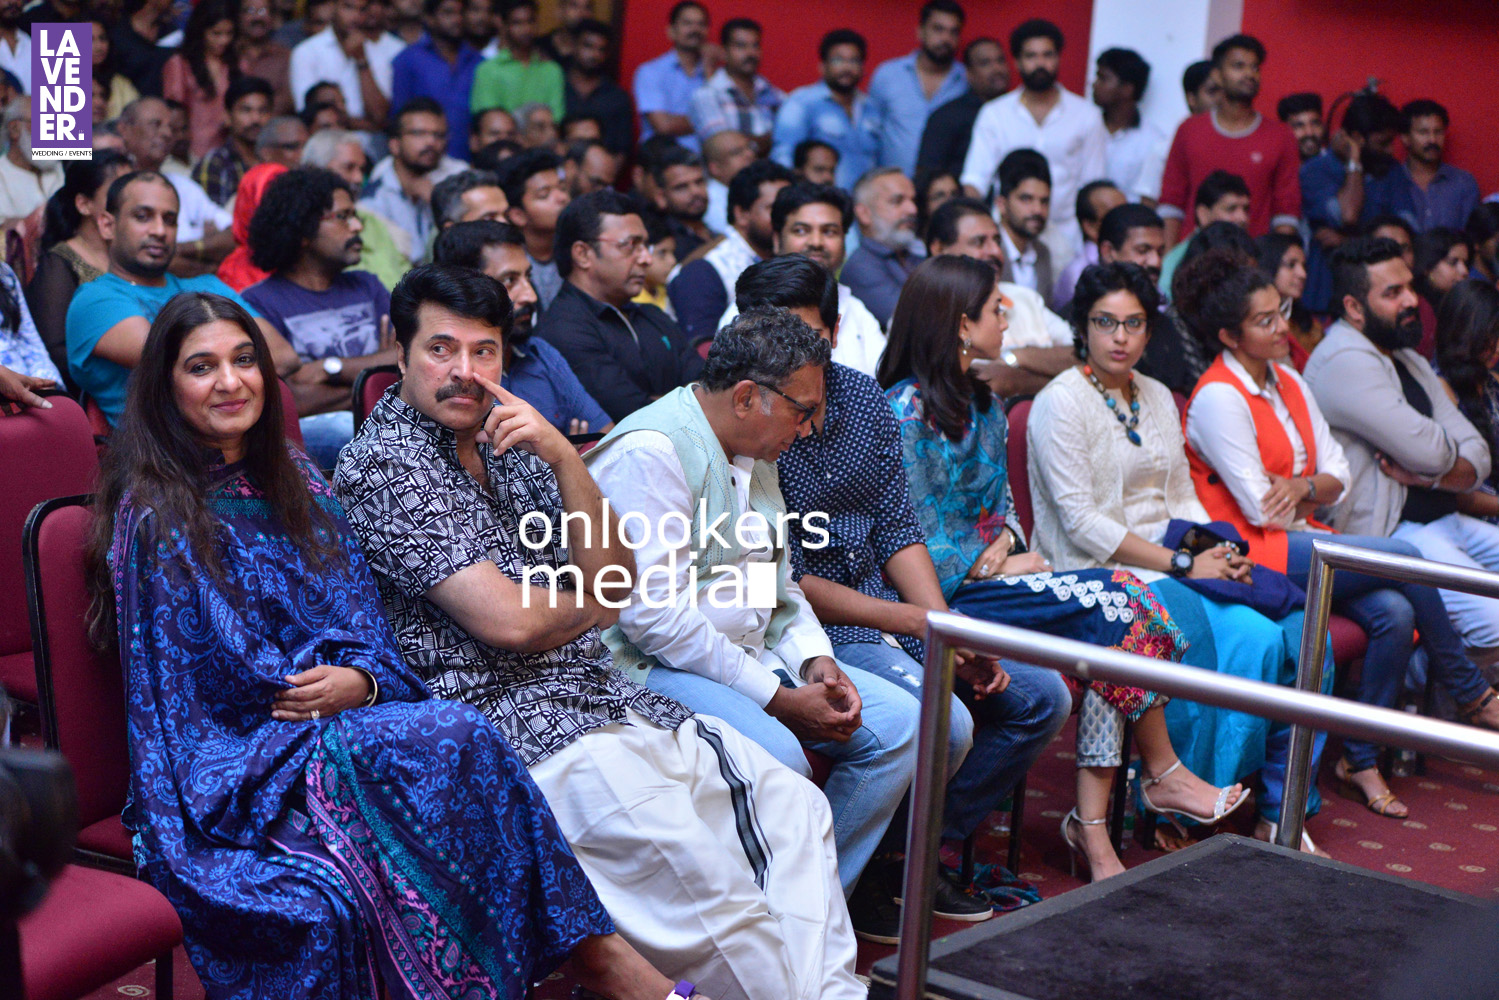 http://onlookersmedia.in/wp-content/uploads/2016/05/Mammootty-with-wife-Sulfath-mammootty-7.jpg